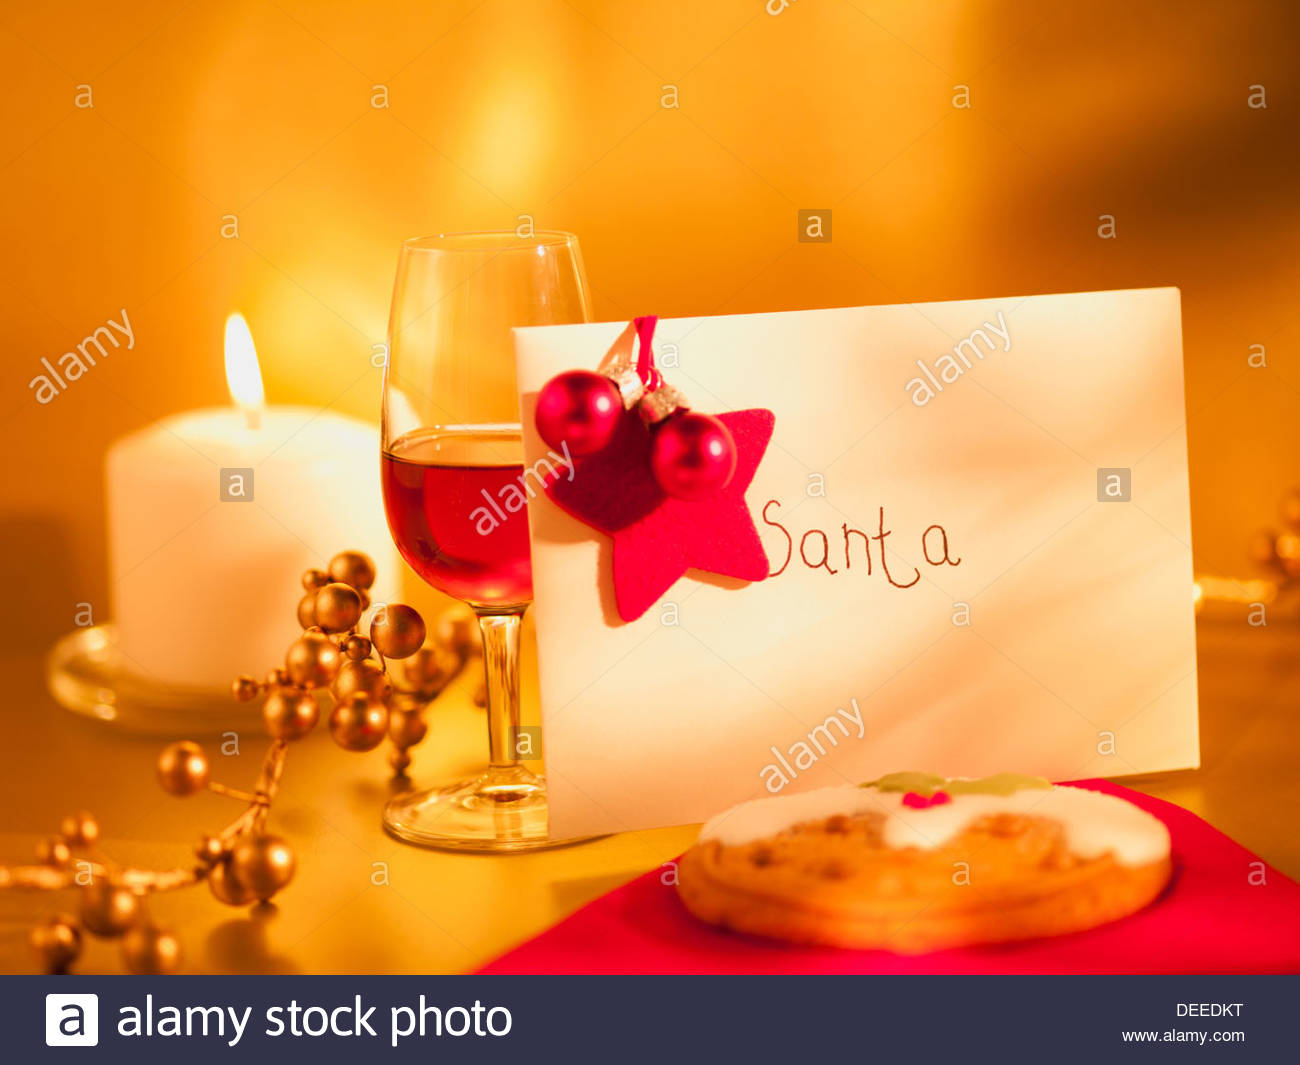 Santa Snack Stock Photos & Santa Snack Stock Images - Alamy